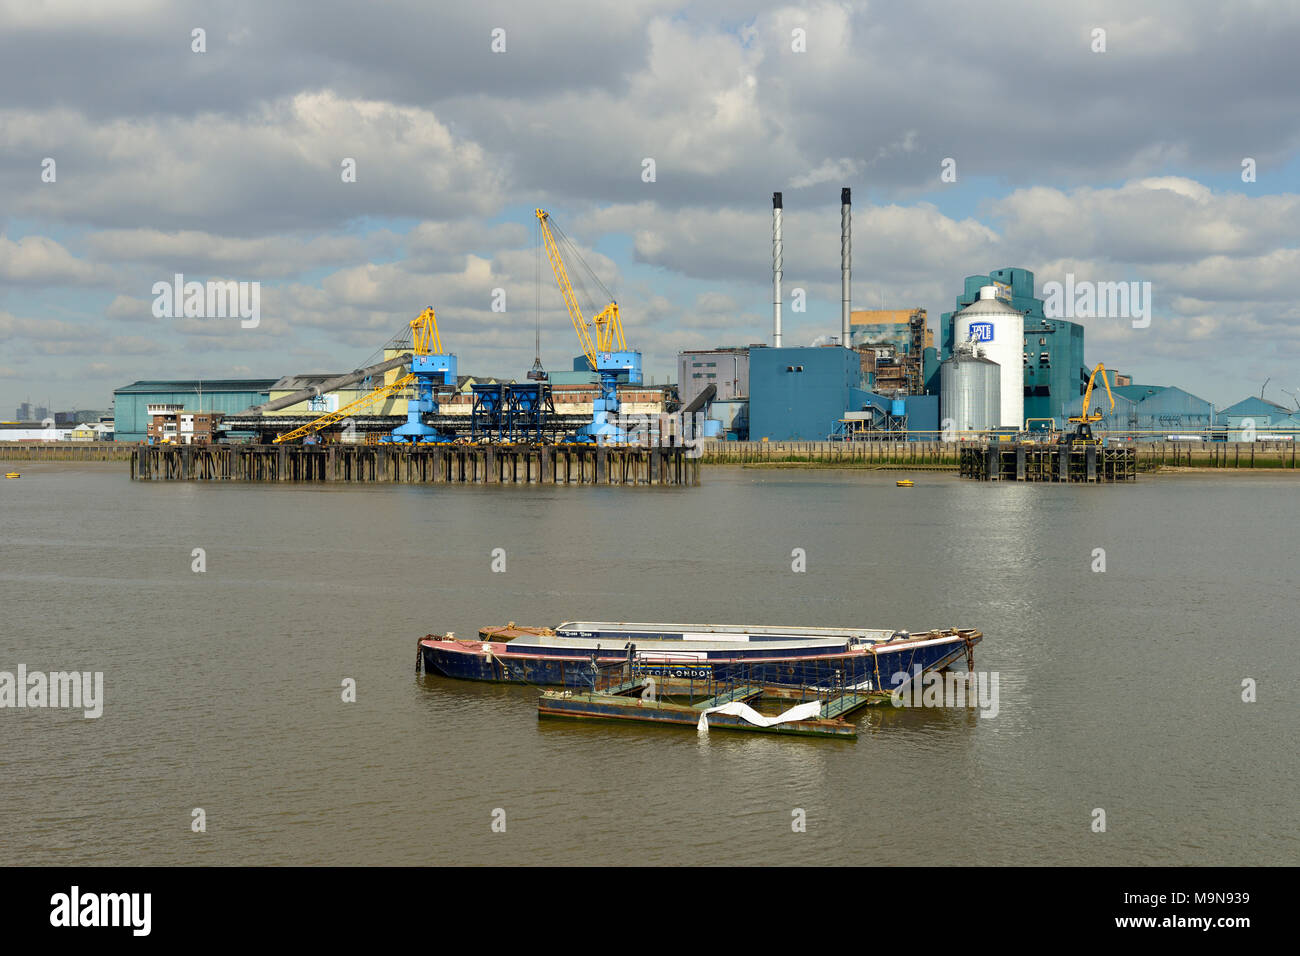 Tate & Lyle sugar refinery, Thames River, East London, United Kingdom - Stock Image